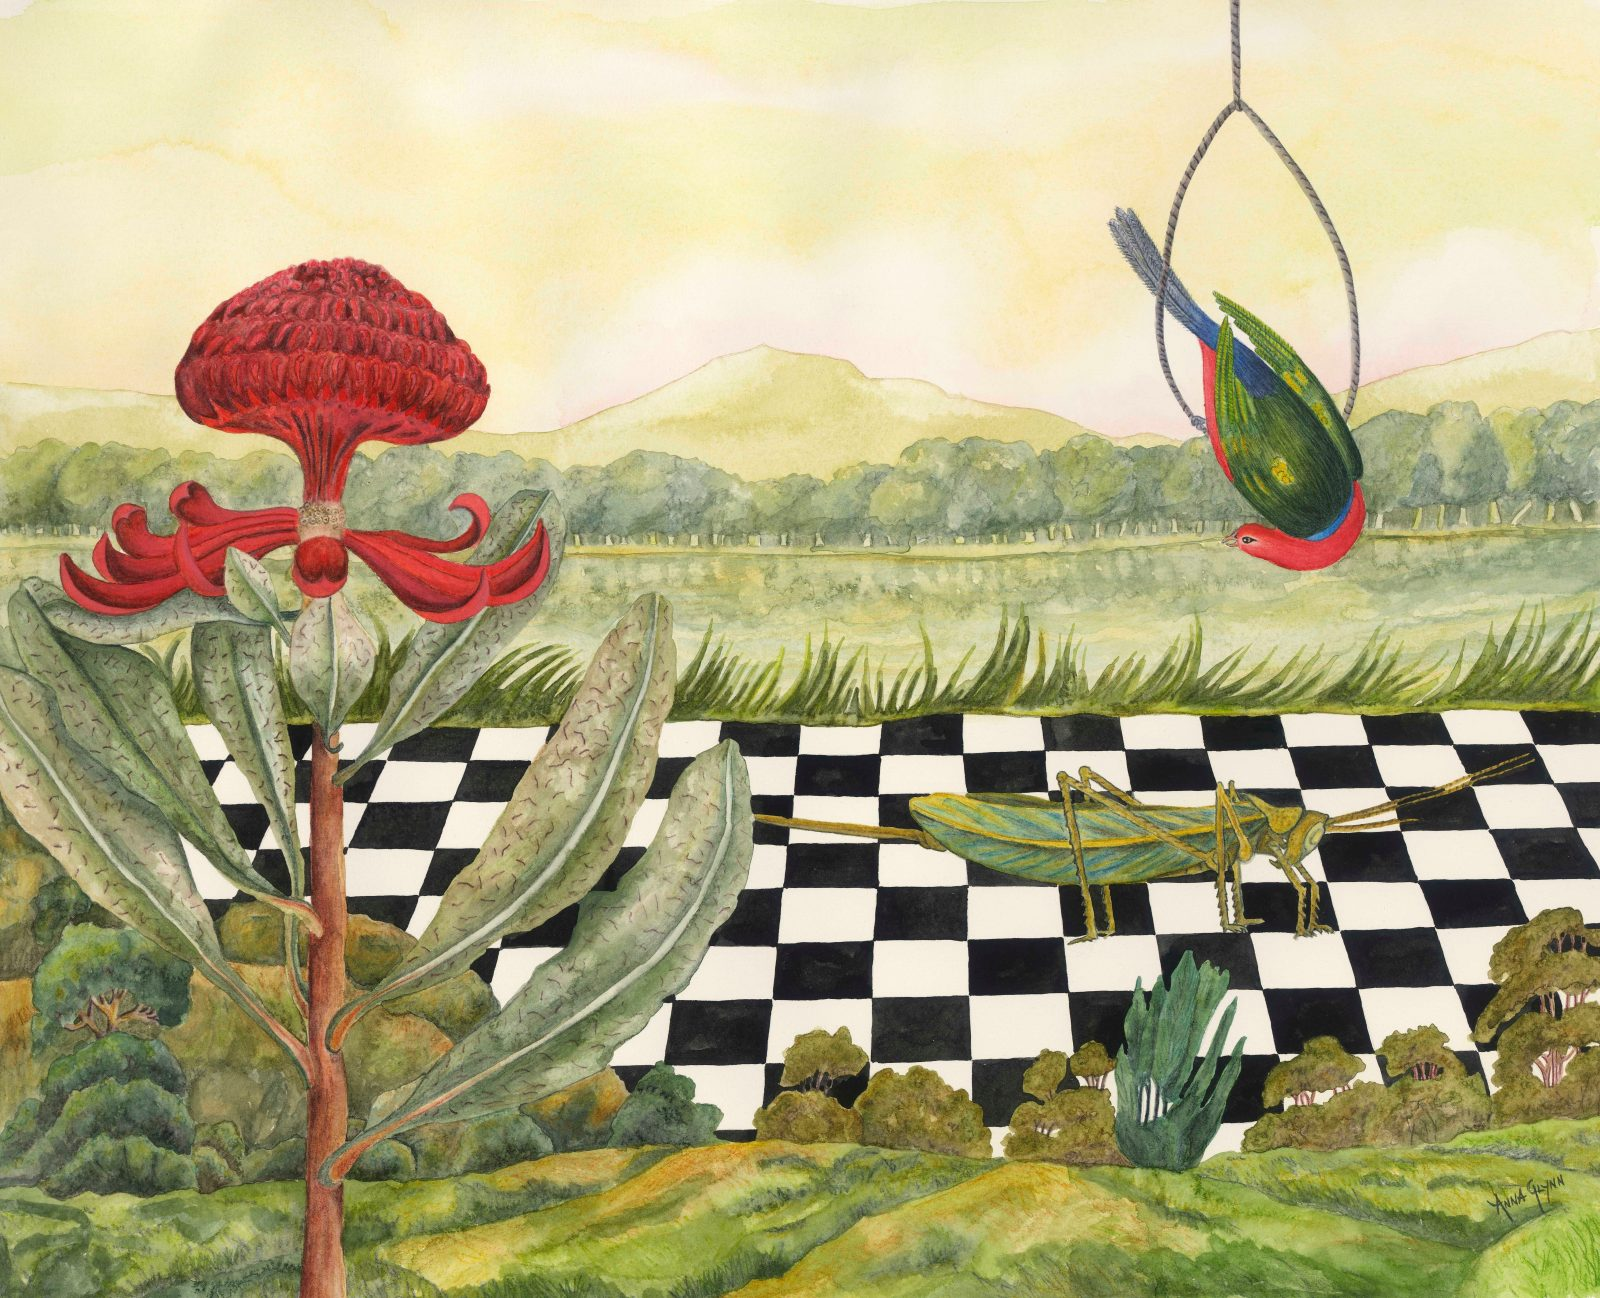 A painting of a Rosella, waratah and grasshopper